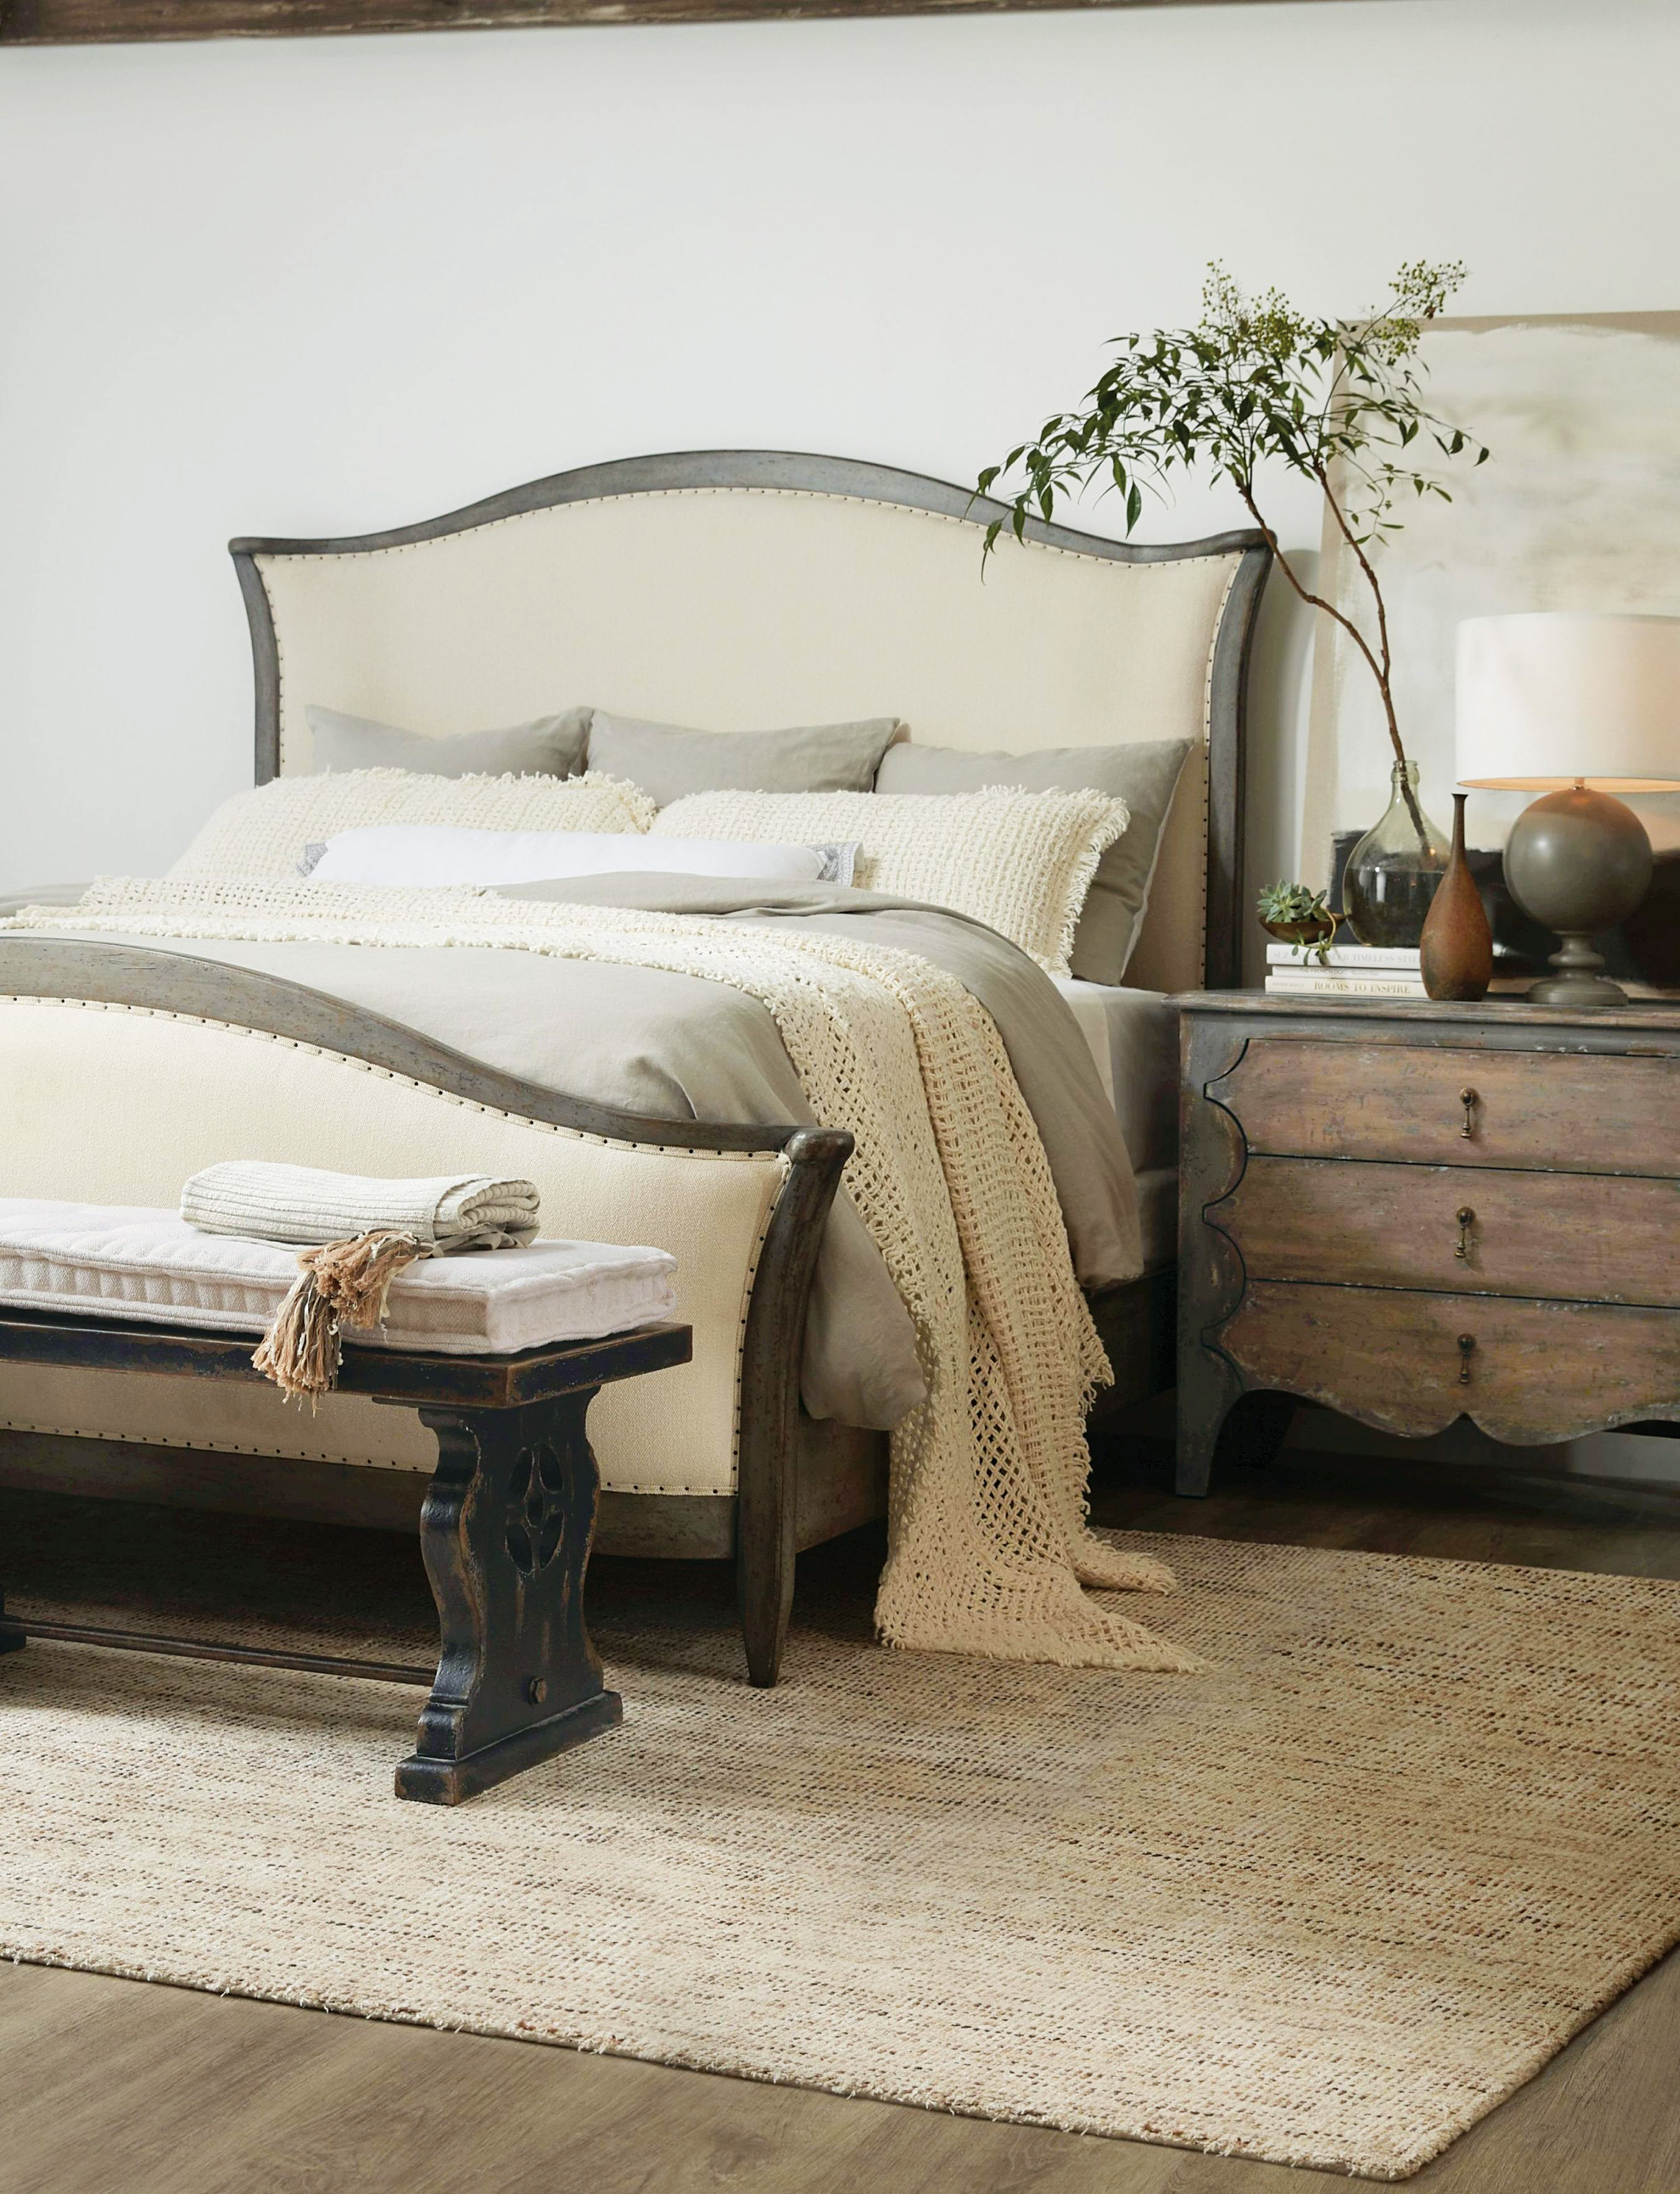 Ciao Bella Queen Upholstered Bed Speckled Gray By Hooker Furniture 5805 90850 96 Riley S Furniture Mattress